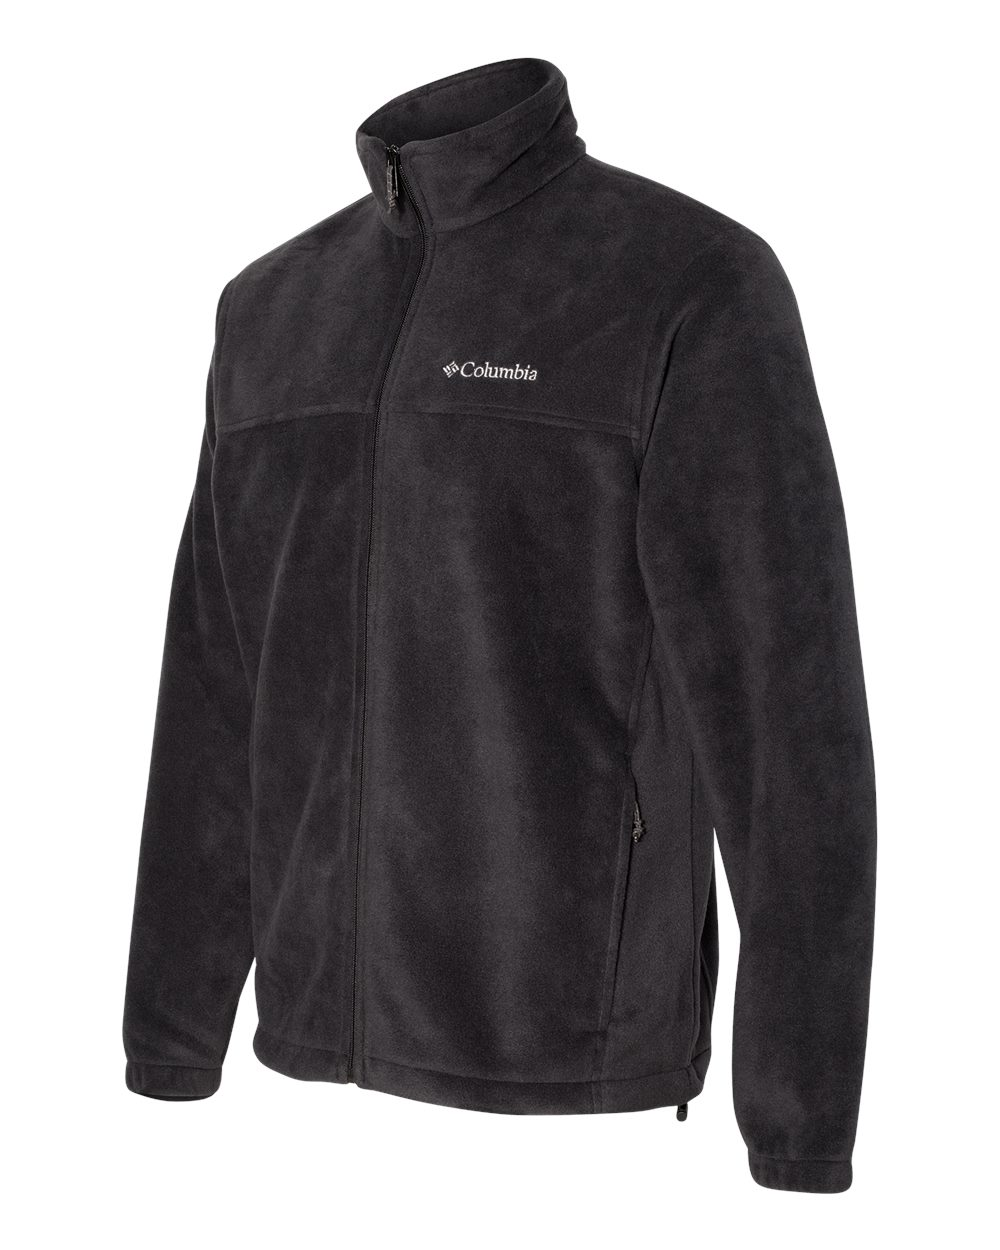 Columbia 147667 - Steens Mountain Full Zip 2.0